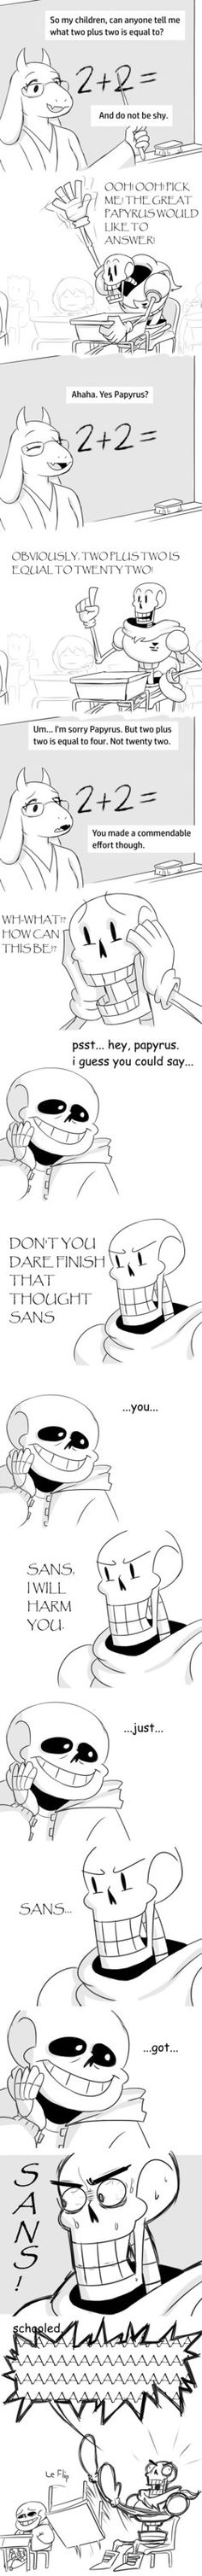 Undertale Comic Thingy by The-PaperNES-Guy